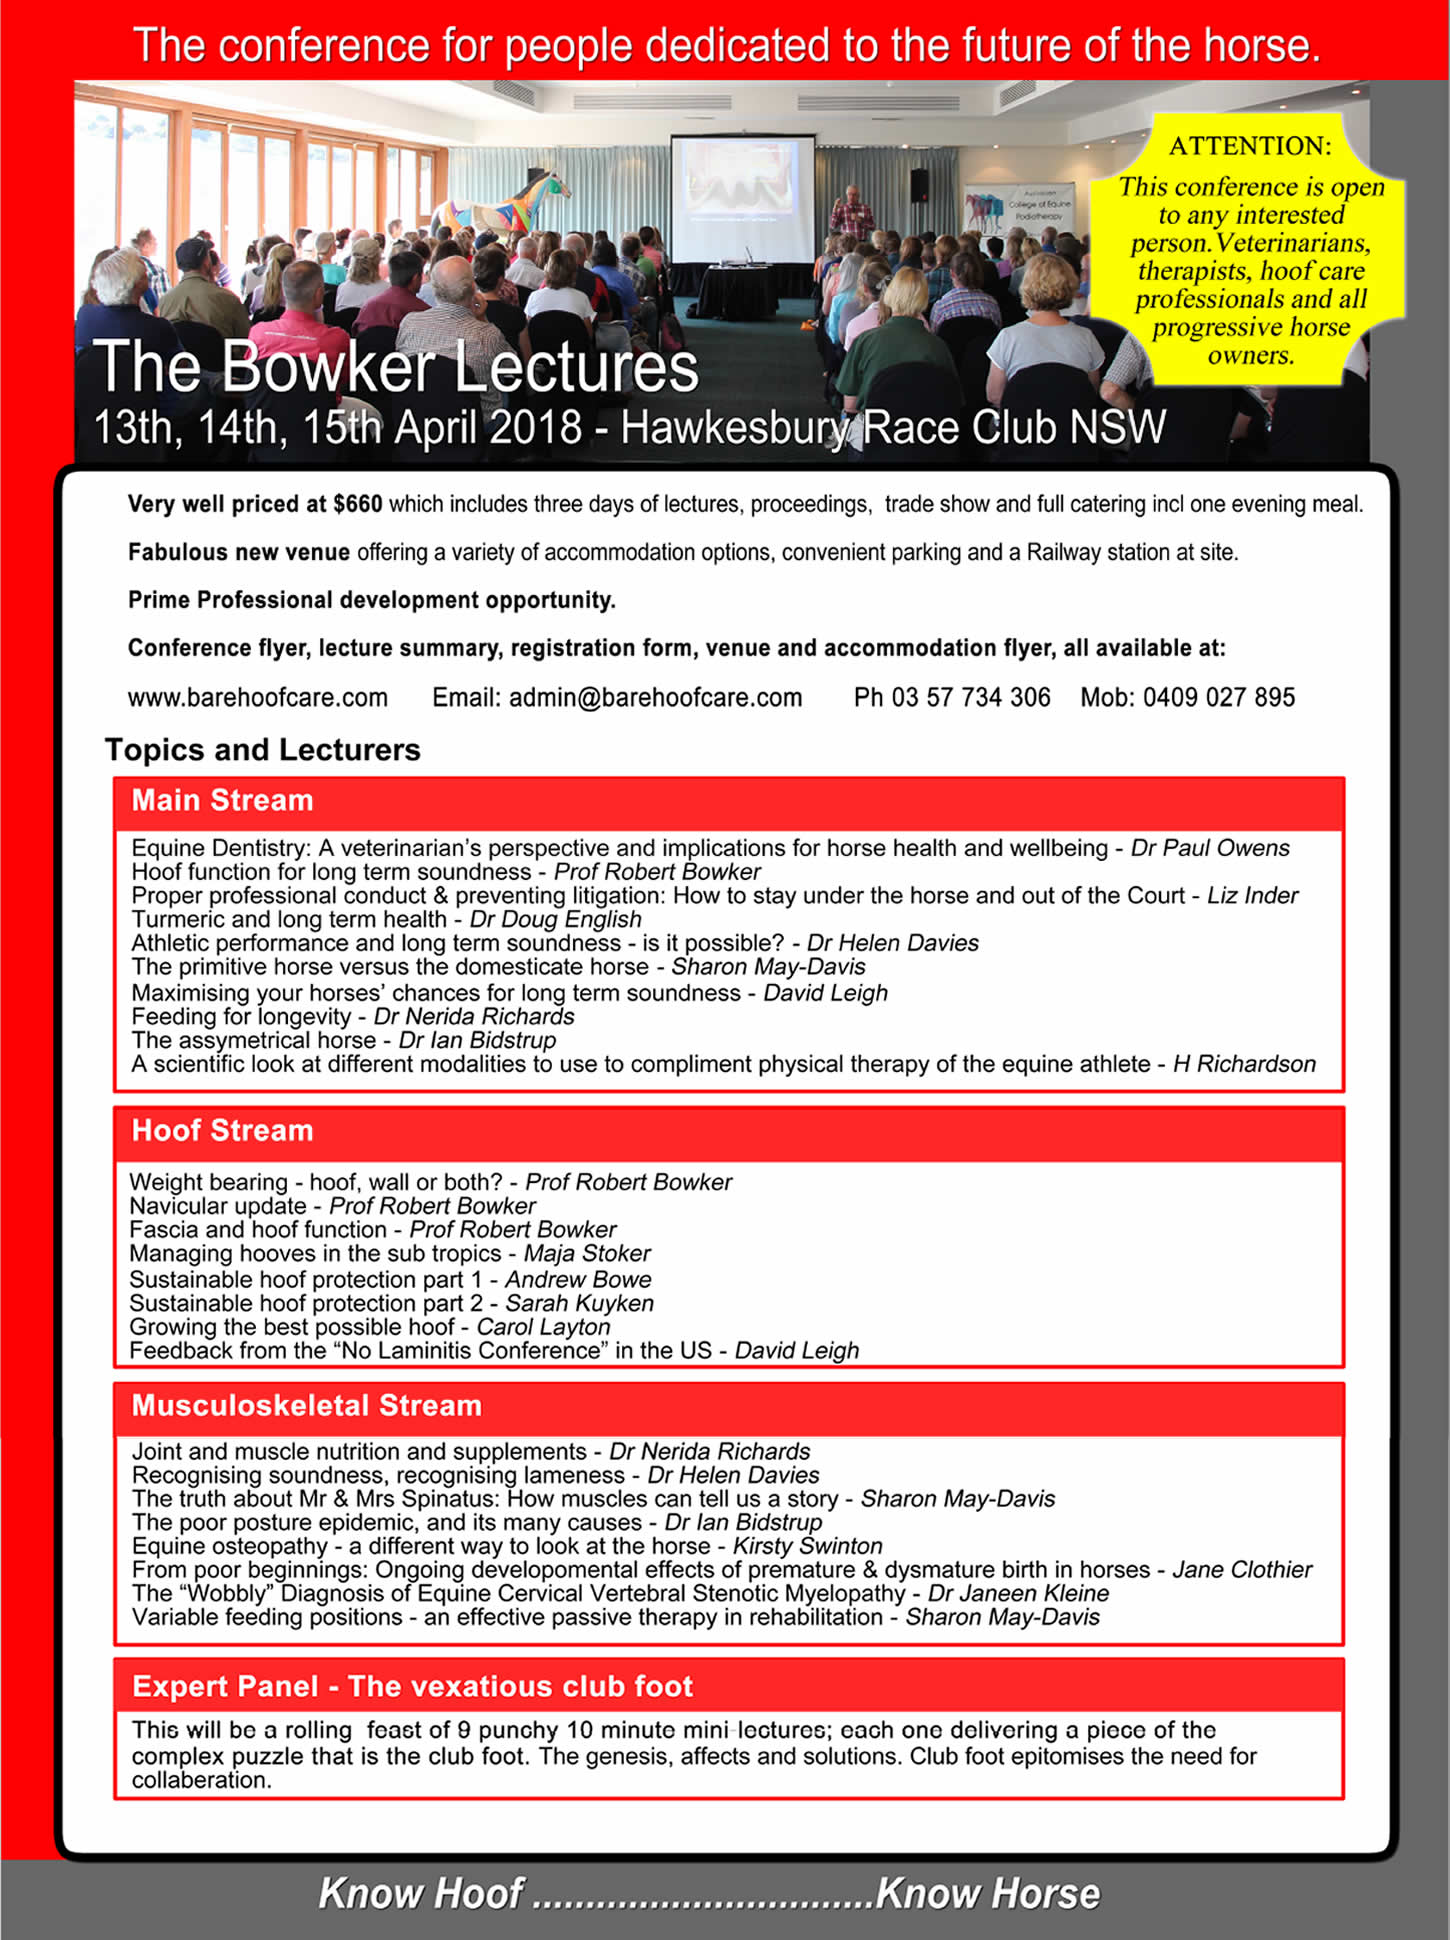 Bowker Lectures Brochure 2018